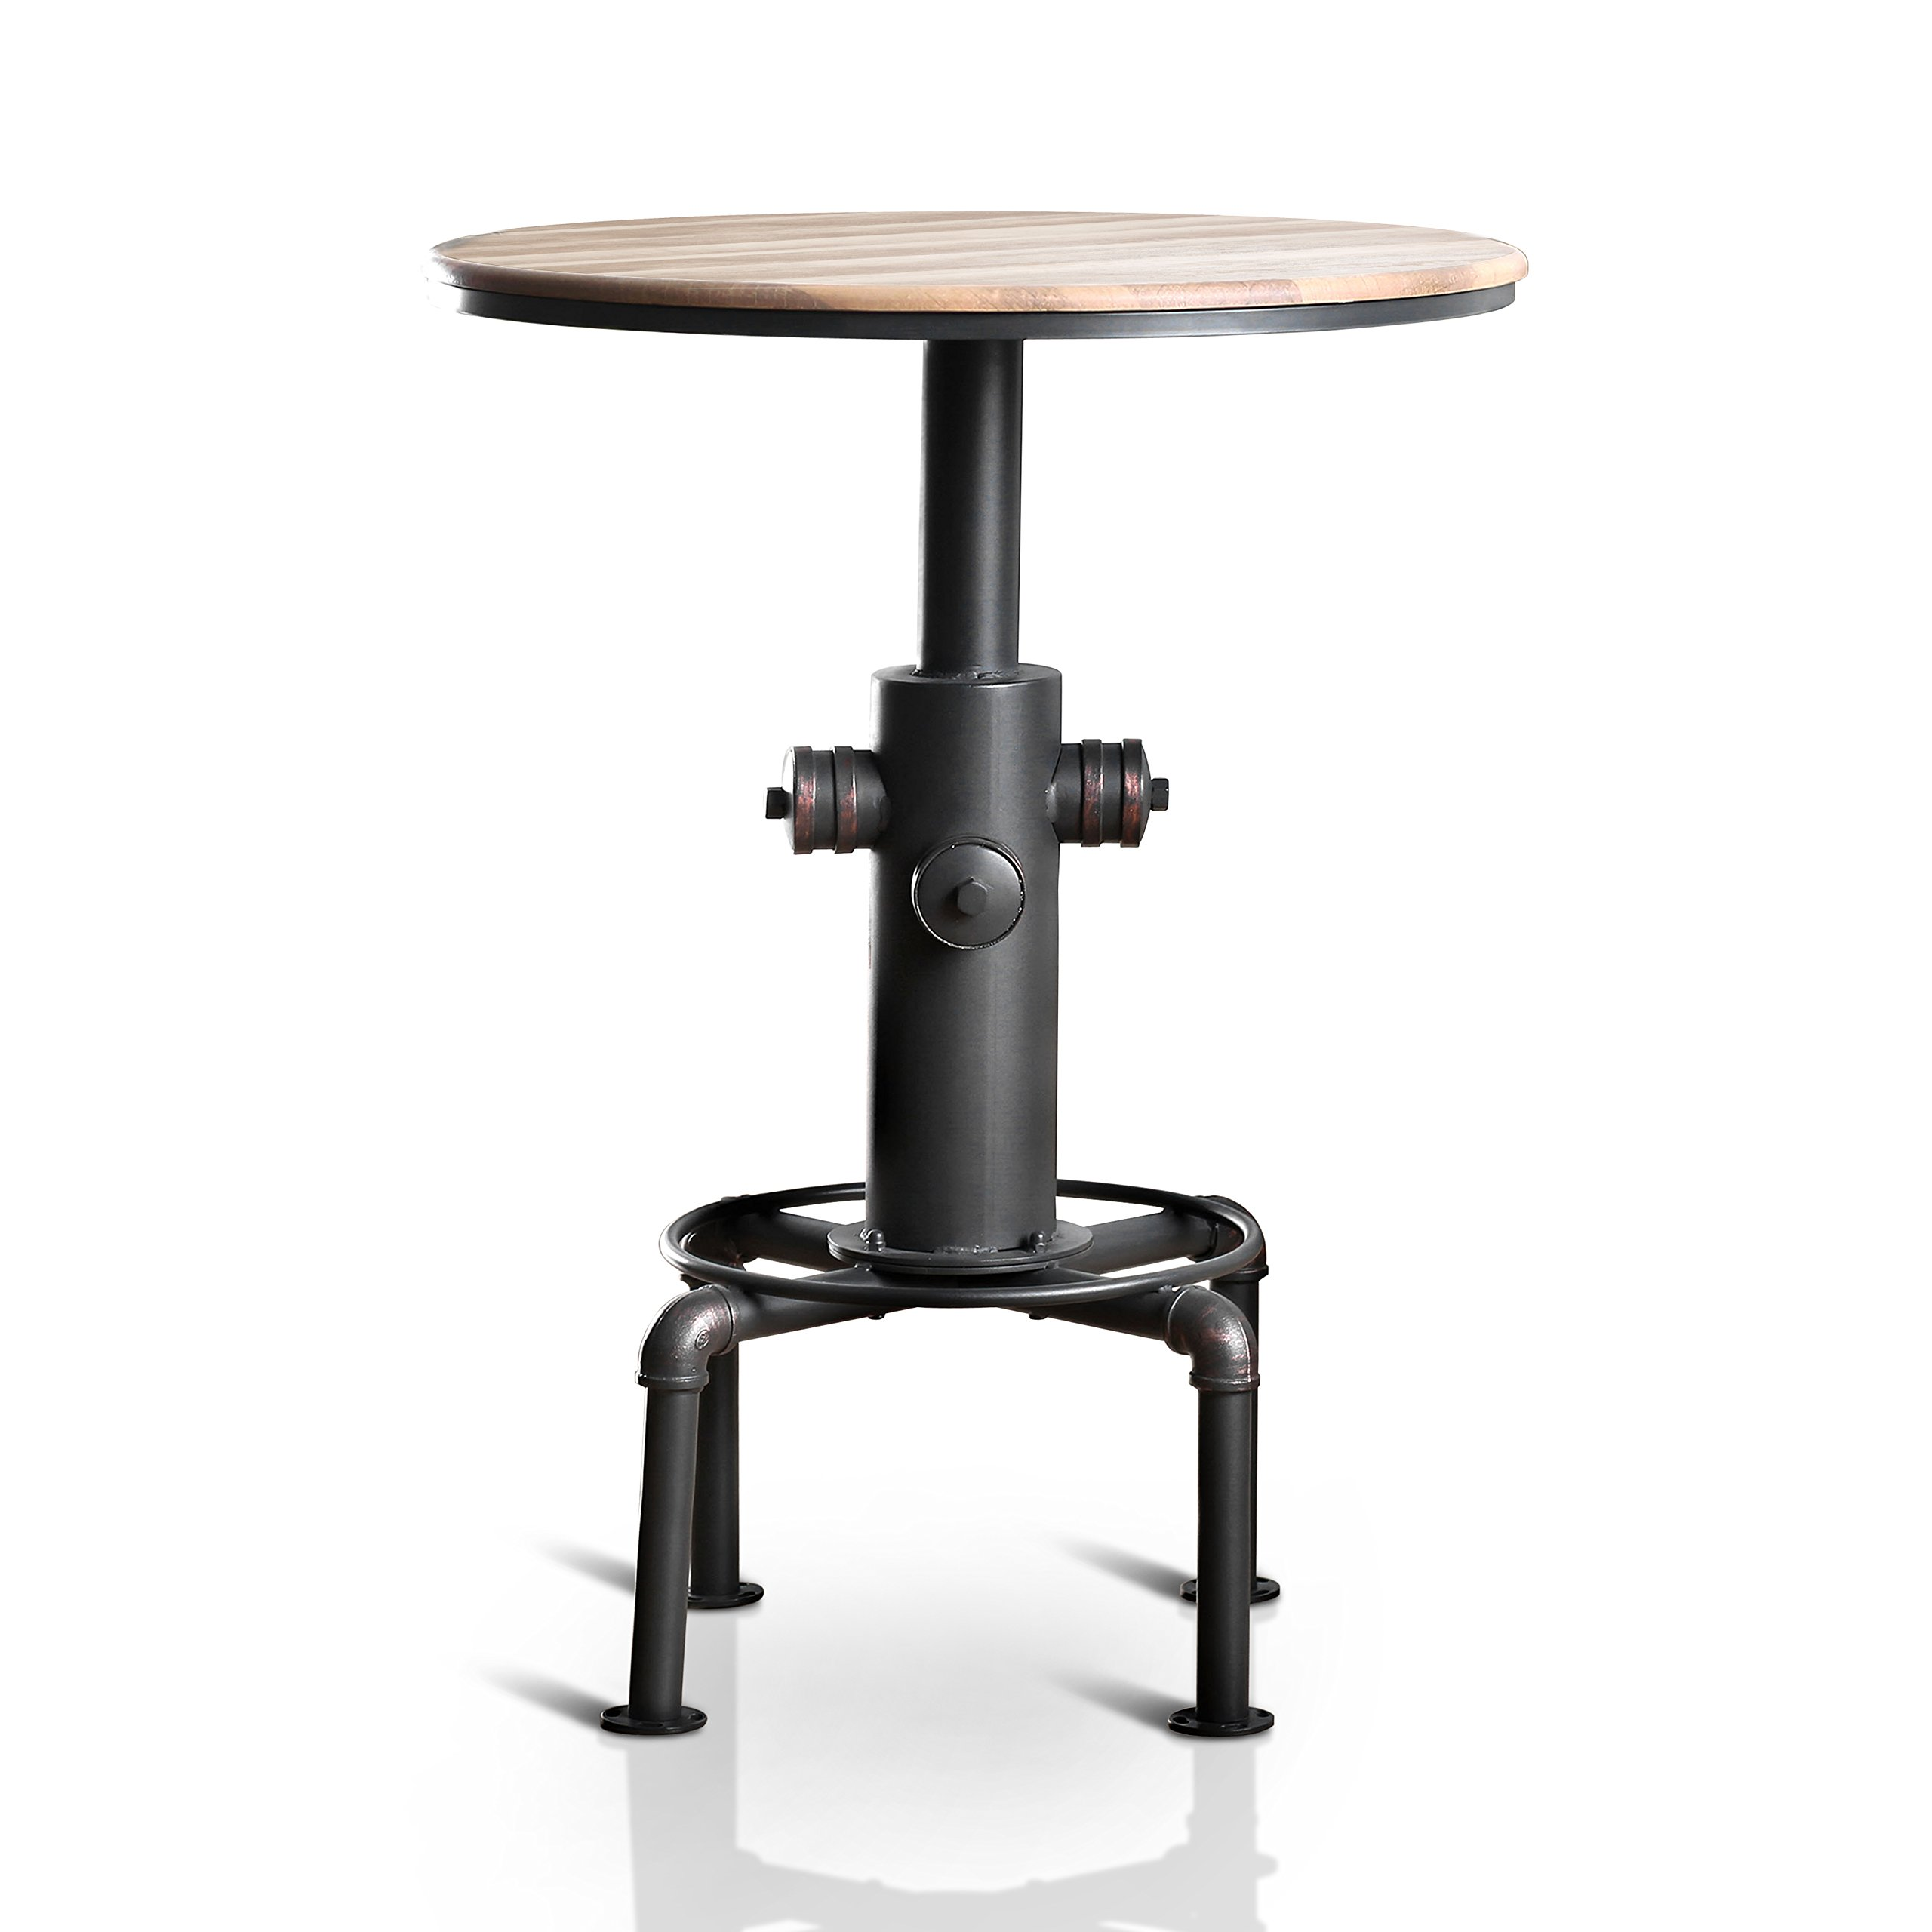 HOMES: Inside + Out IDF-3367BT Grant Bar Table Antique Black Industrial